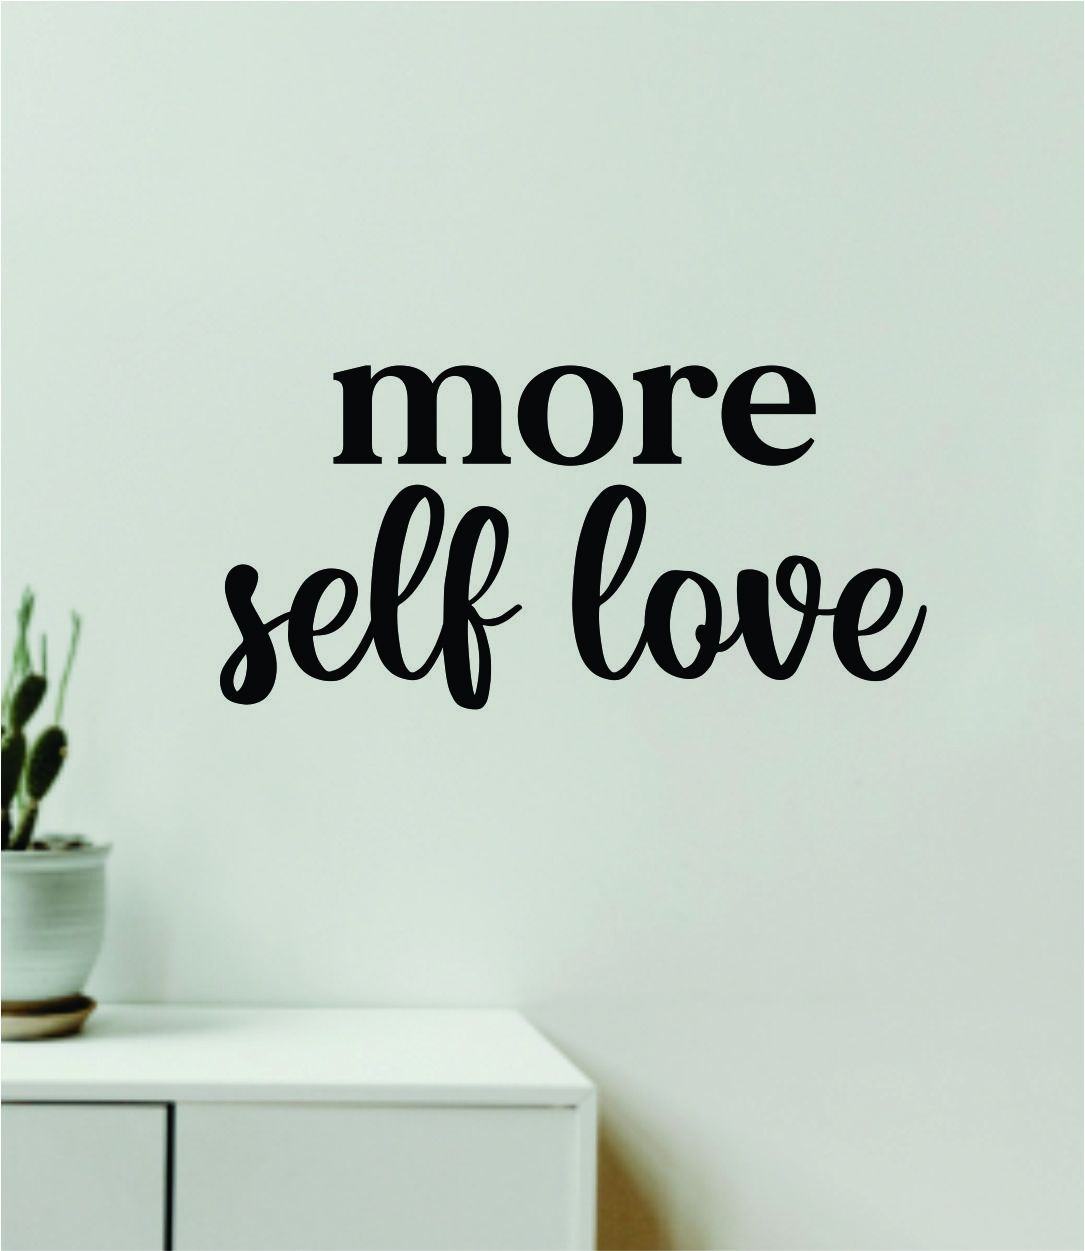 More Self Love Quote Wall Decal Sticker Vinyl Art Decor Bedroom Room Girls Inspirational Motivational Trendy Health Gym Mirror - olympic blue